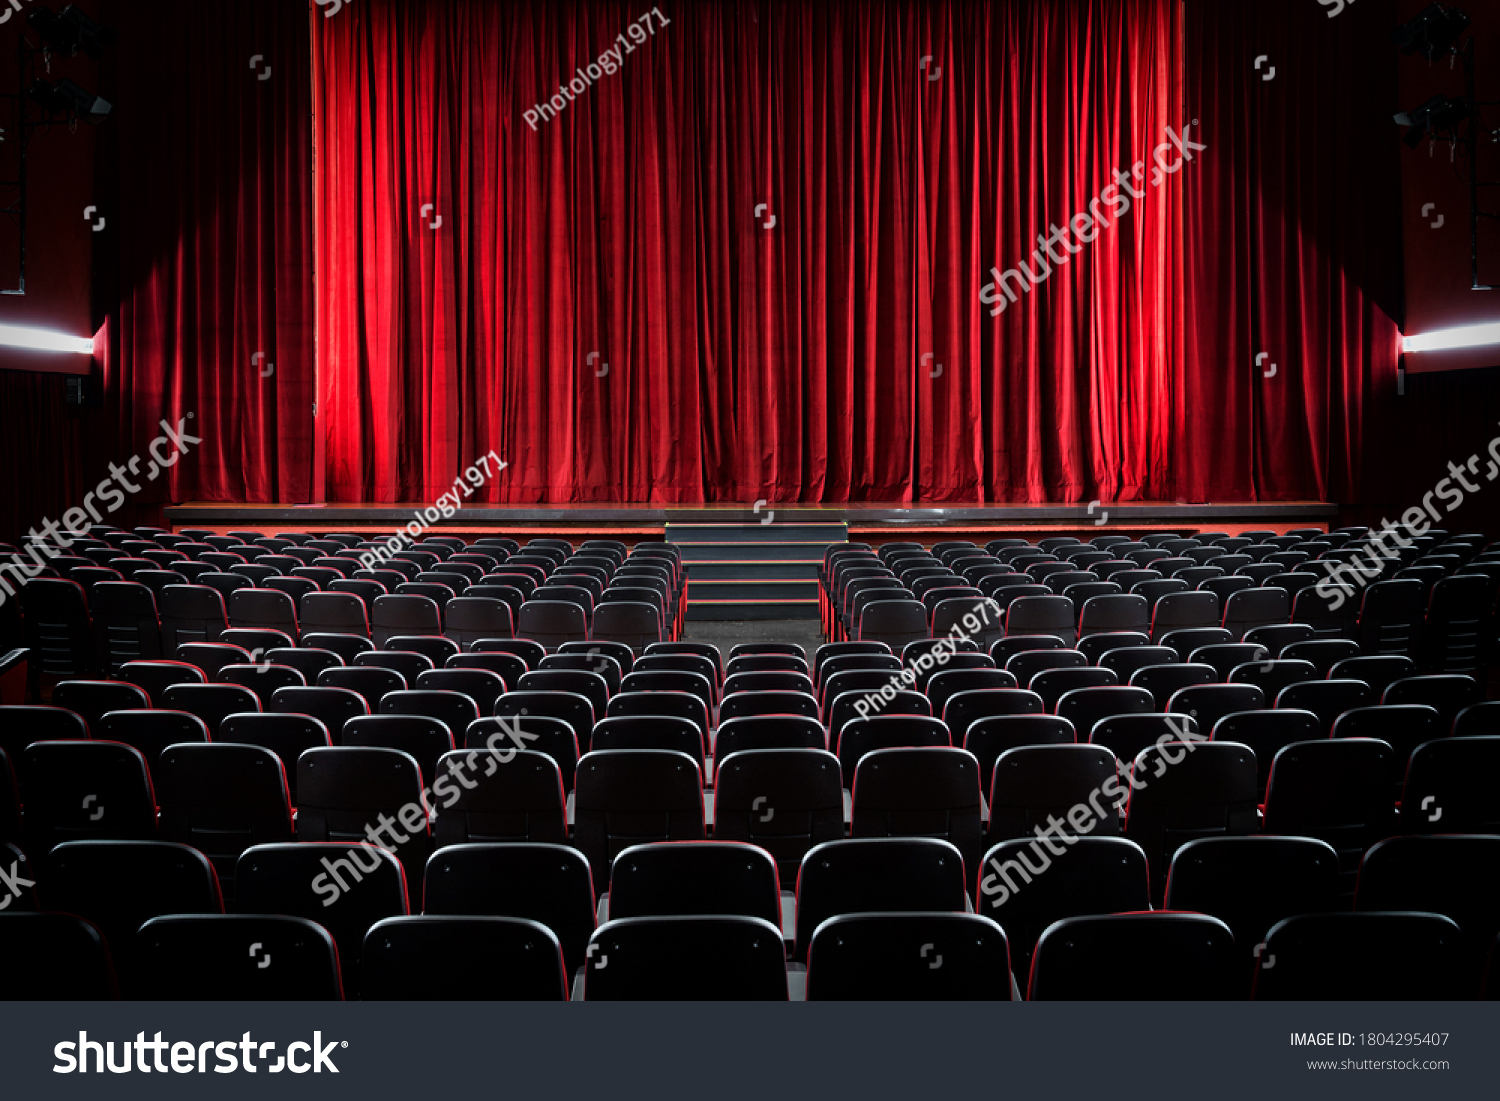 Darkened empty movie theatre and stage with the red curtains drawn viewed over rows of vacant seats from the rear #1804295407